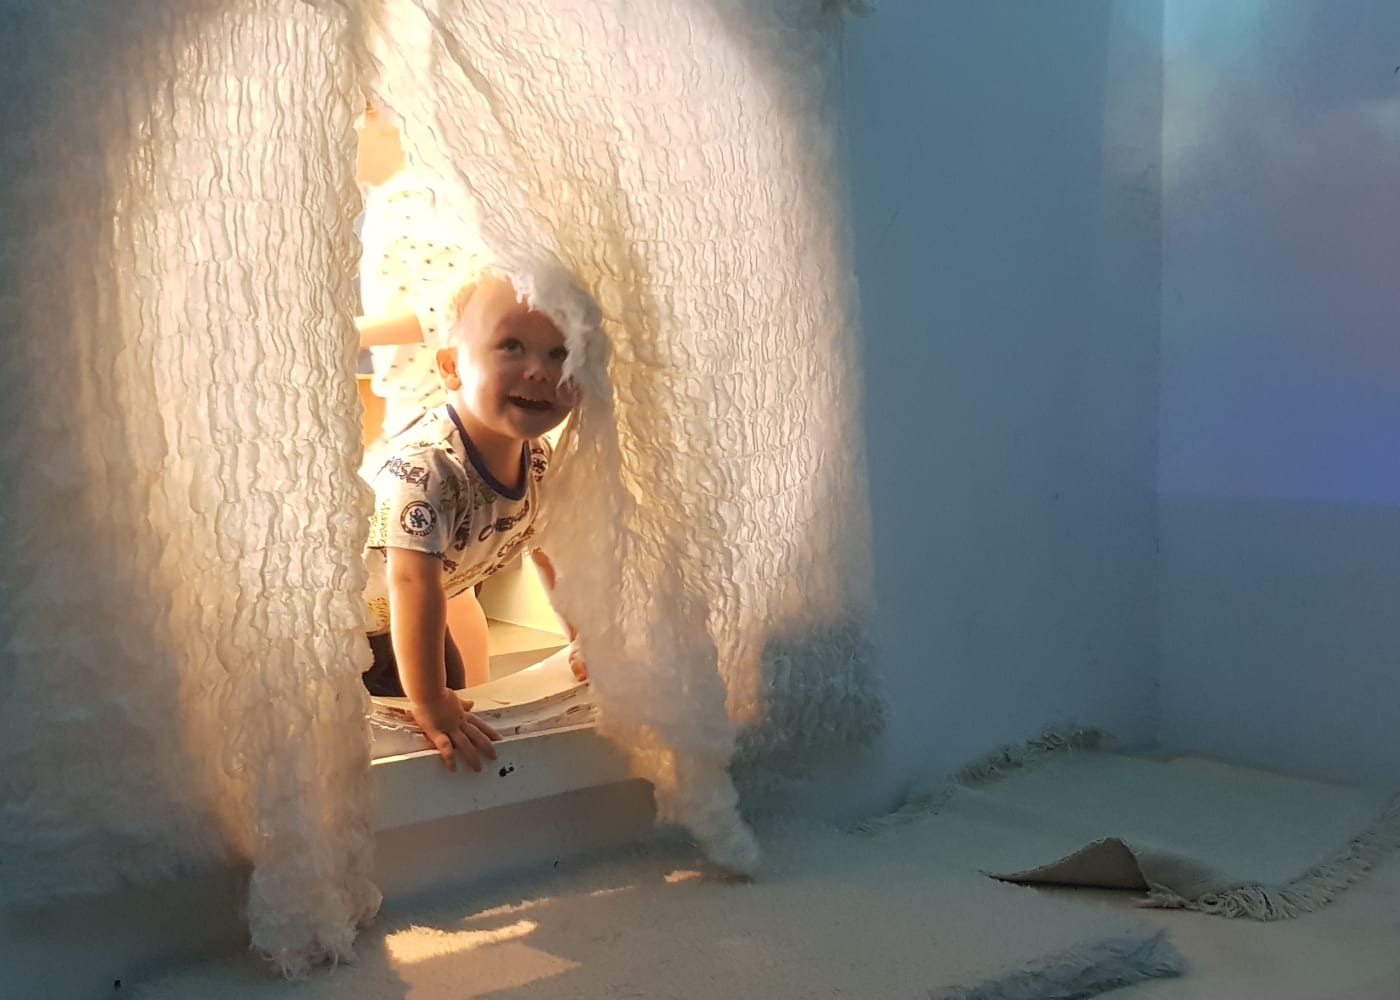 Best museums and exhibitions for kids in Singapore